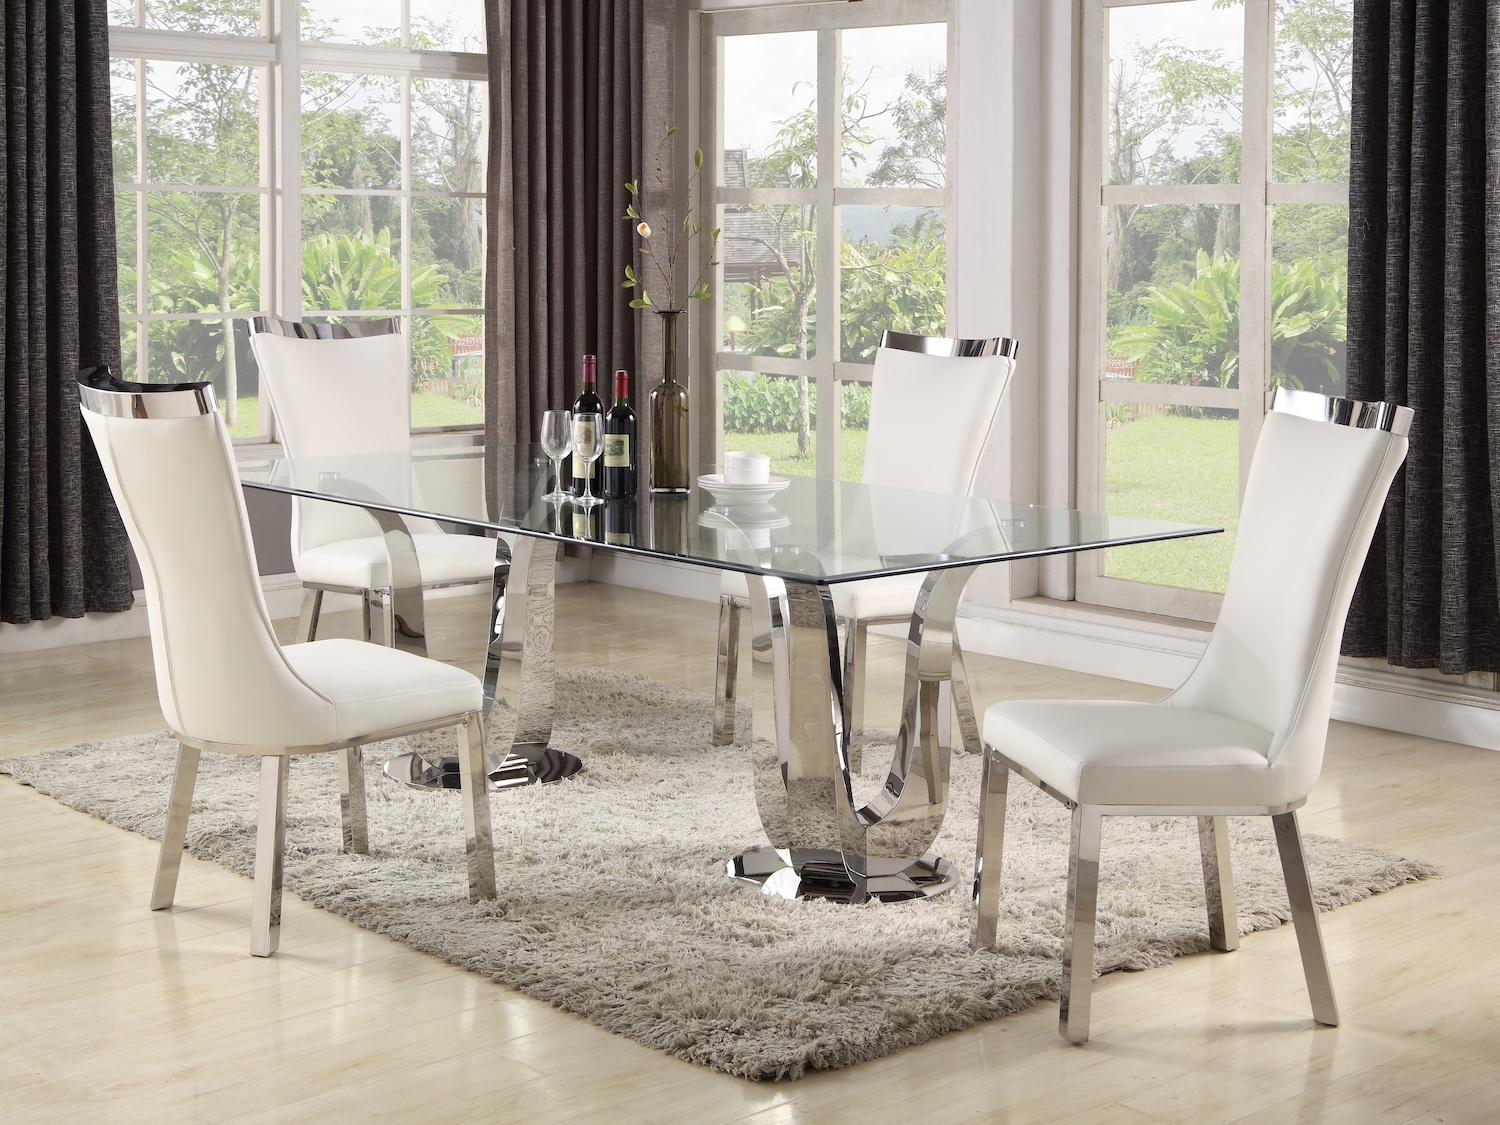 Adelle, Adelle, Premium Dining Room Collection by Midha Furniture to Brampton, Mississauga, Etobicoke, Toronto, Scraborough, Caledon, Oakville, Markham, Ajax, Pickering, Oshawa, Richmondhill, Kitchener, Hamilton and GTA area